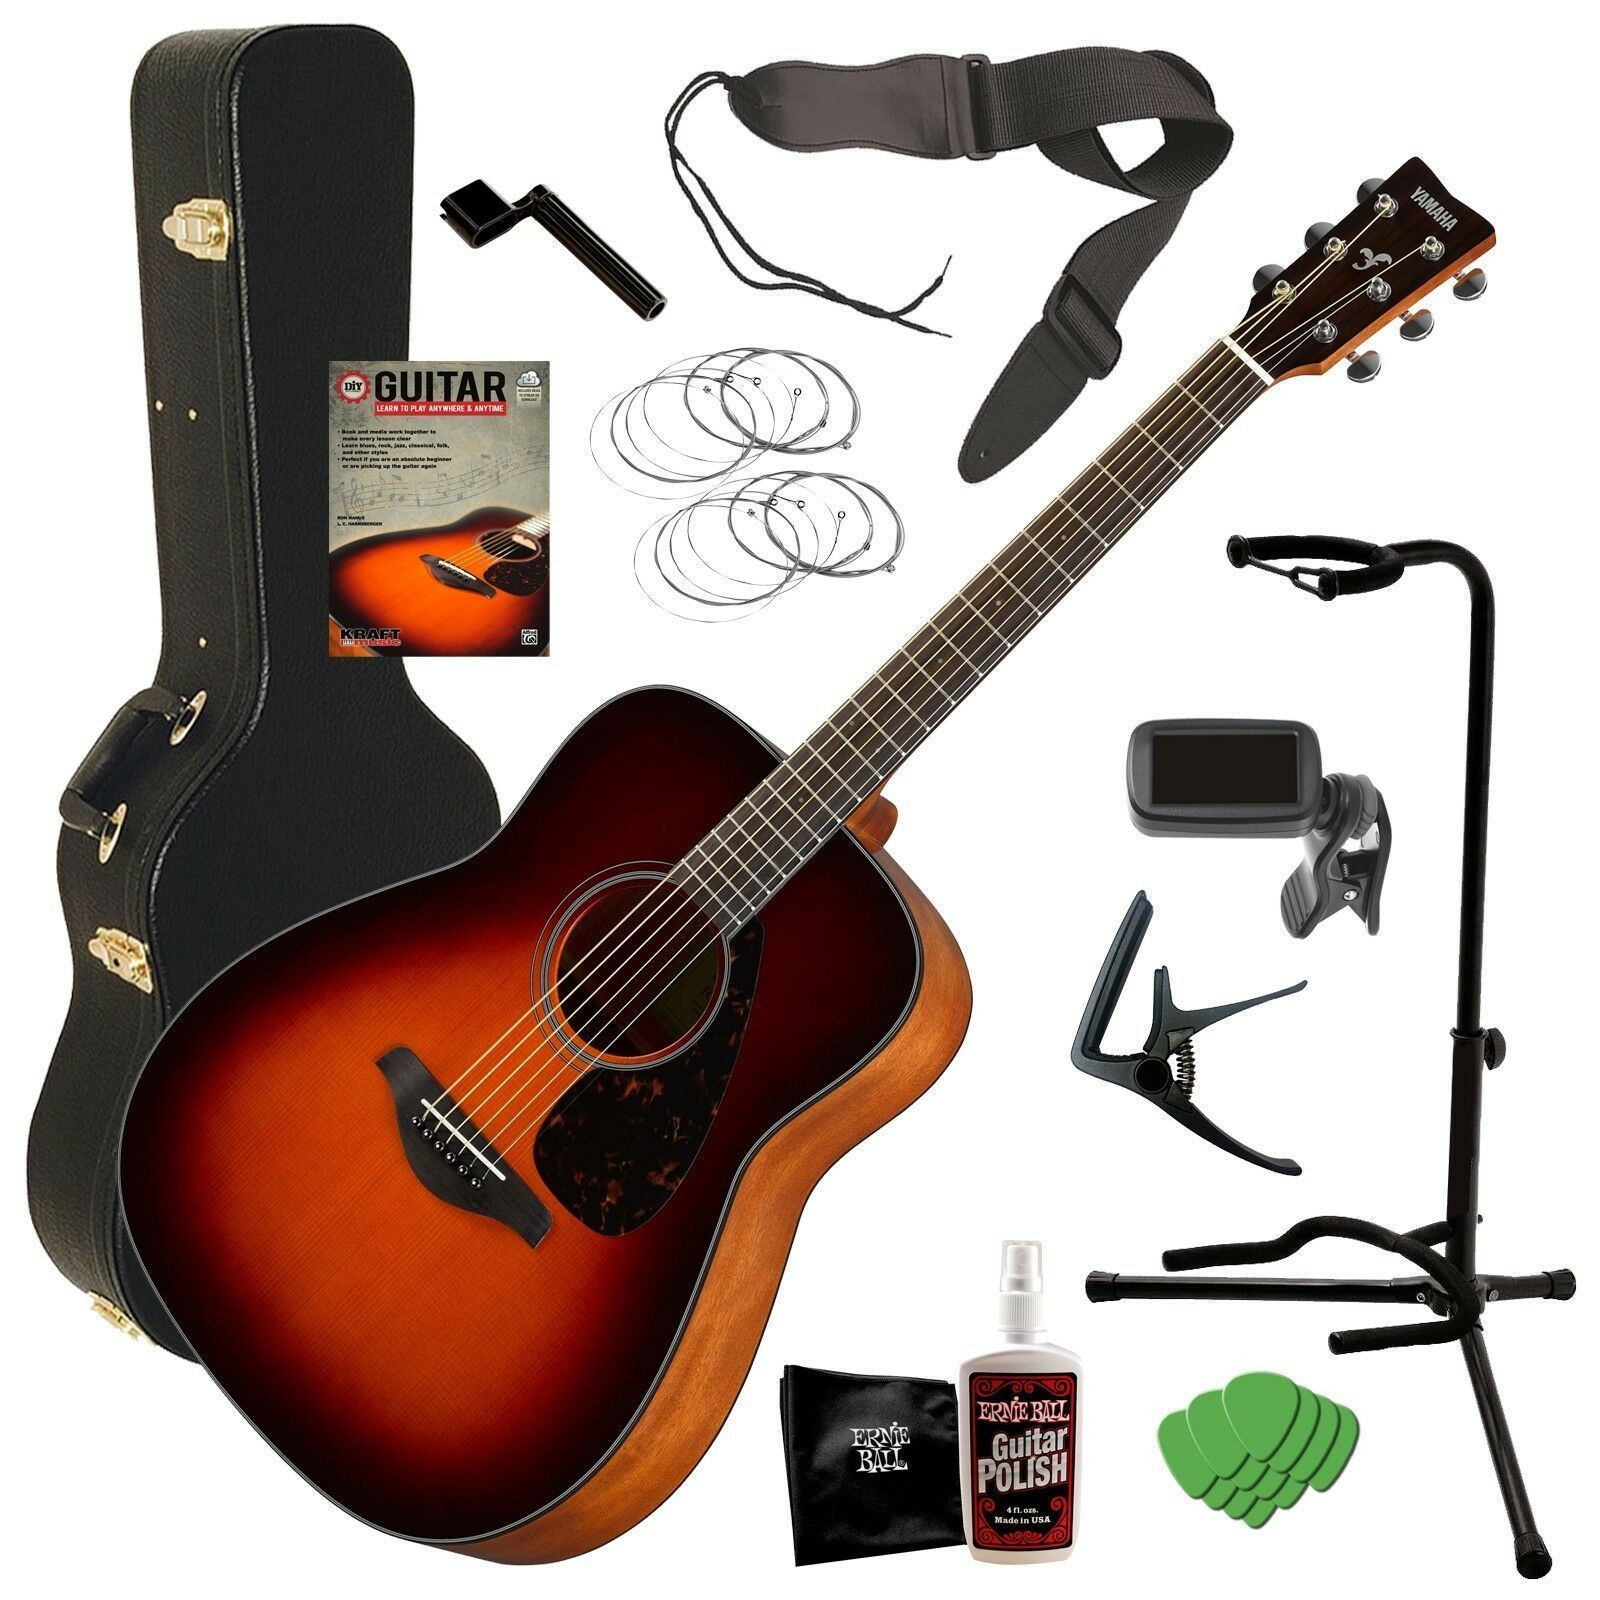 Yamaha Fg800 Acoustic Guitar Brown Sunburst Complete Guitar Bundle In 2020 Yamaha Guitar Guitar Yamaha Fg800